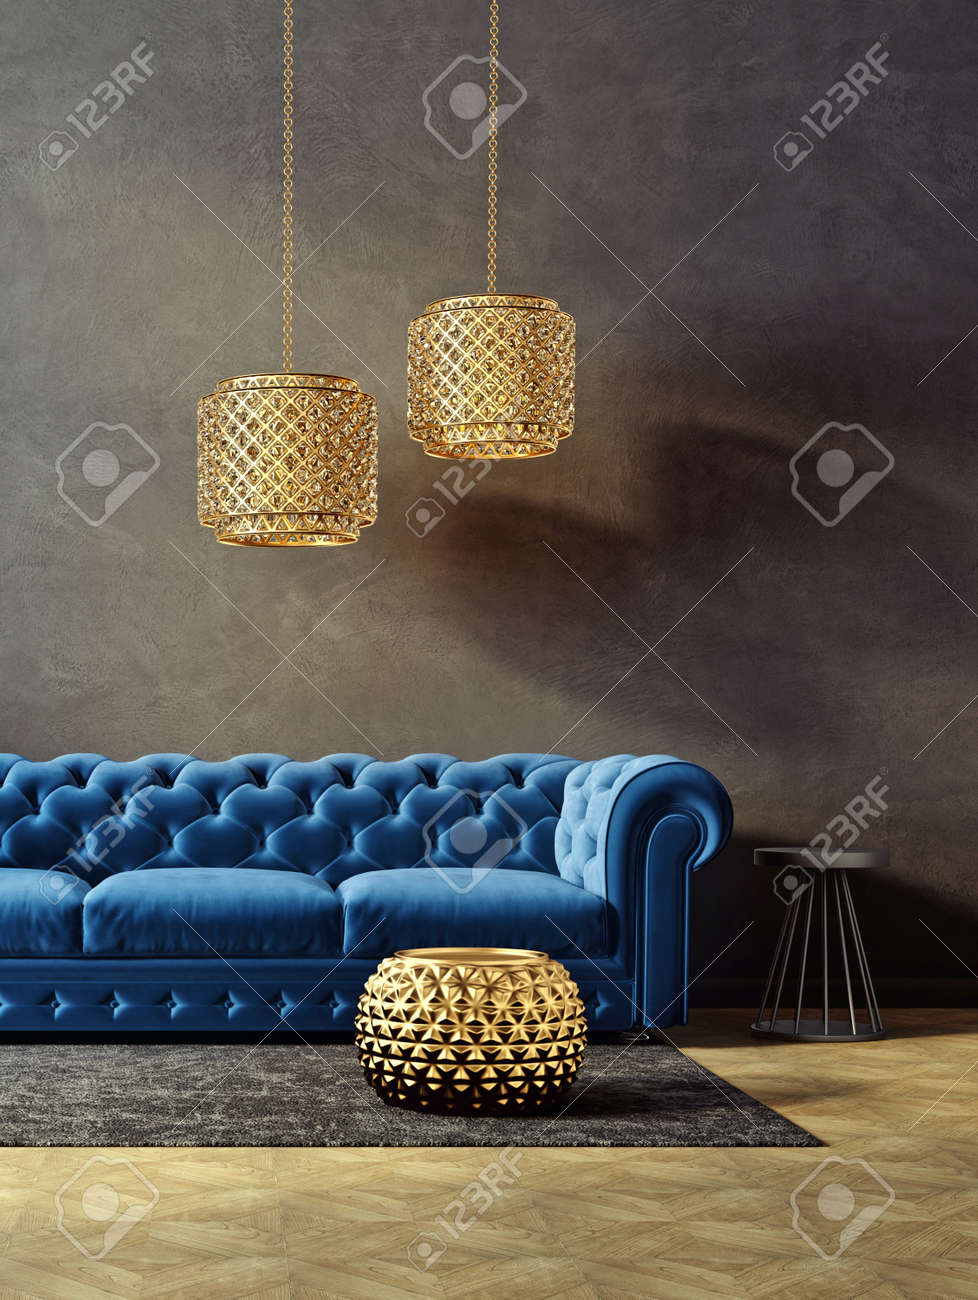 Modern Living Room With Blue Sofa And Lamp Scandinavian Interior Stock Photo Picture And Royalty Free Image Image 125852004